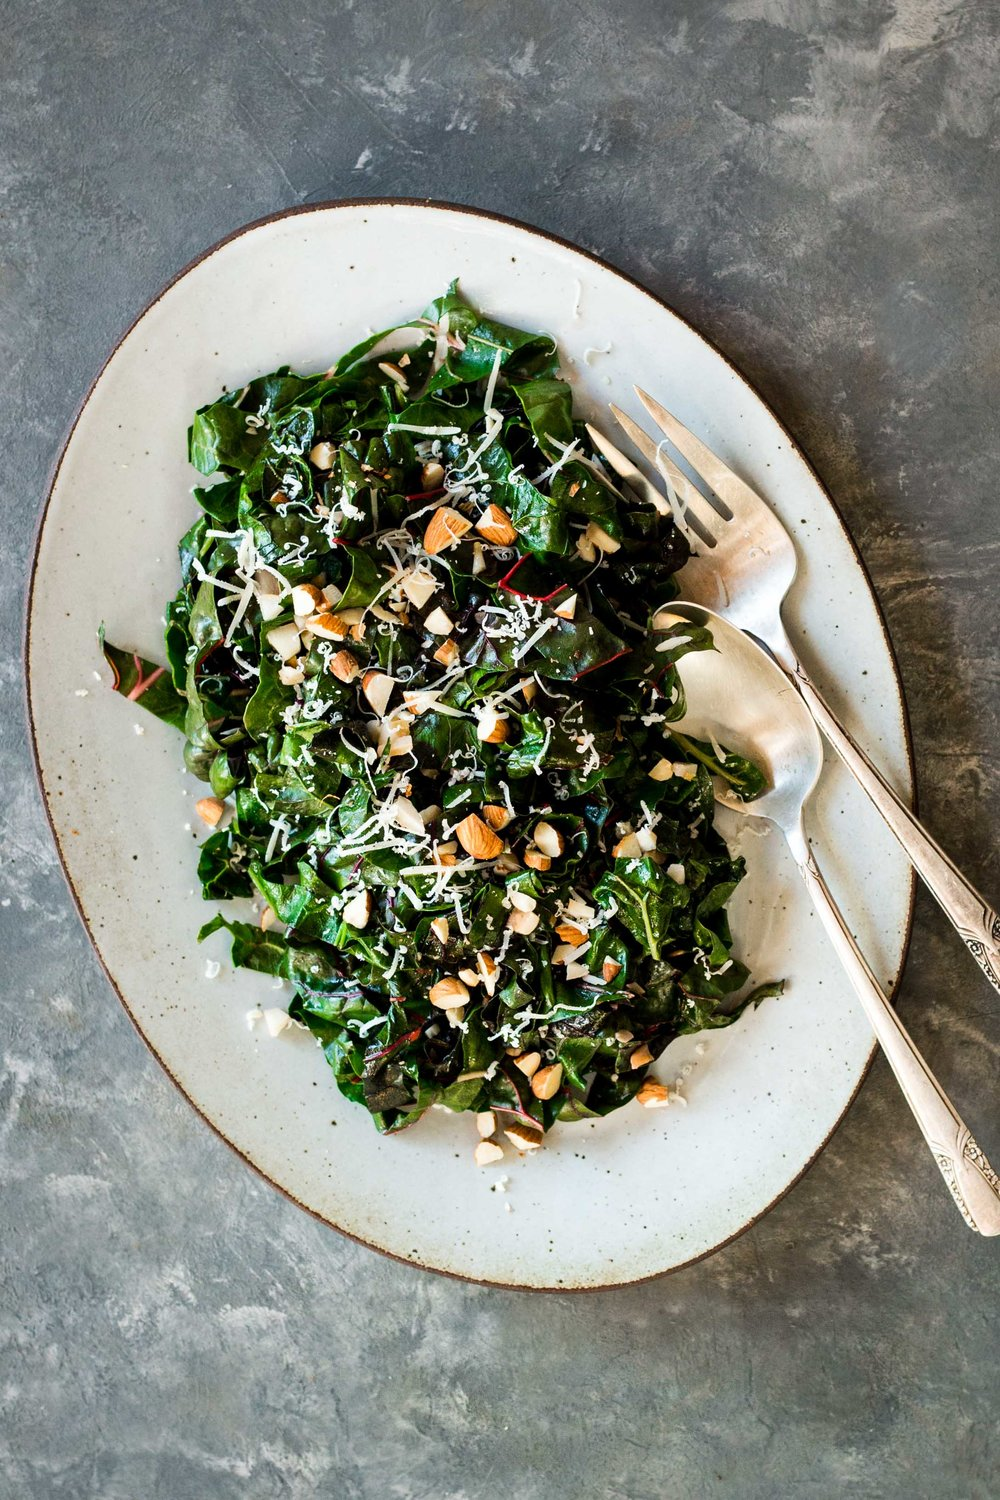 Lemon-Garlic Swiss Chard Salad